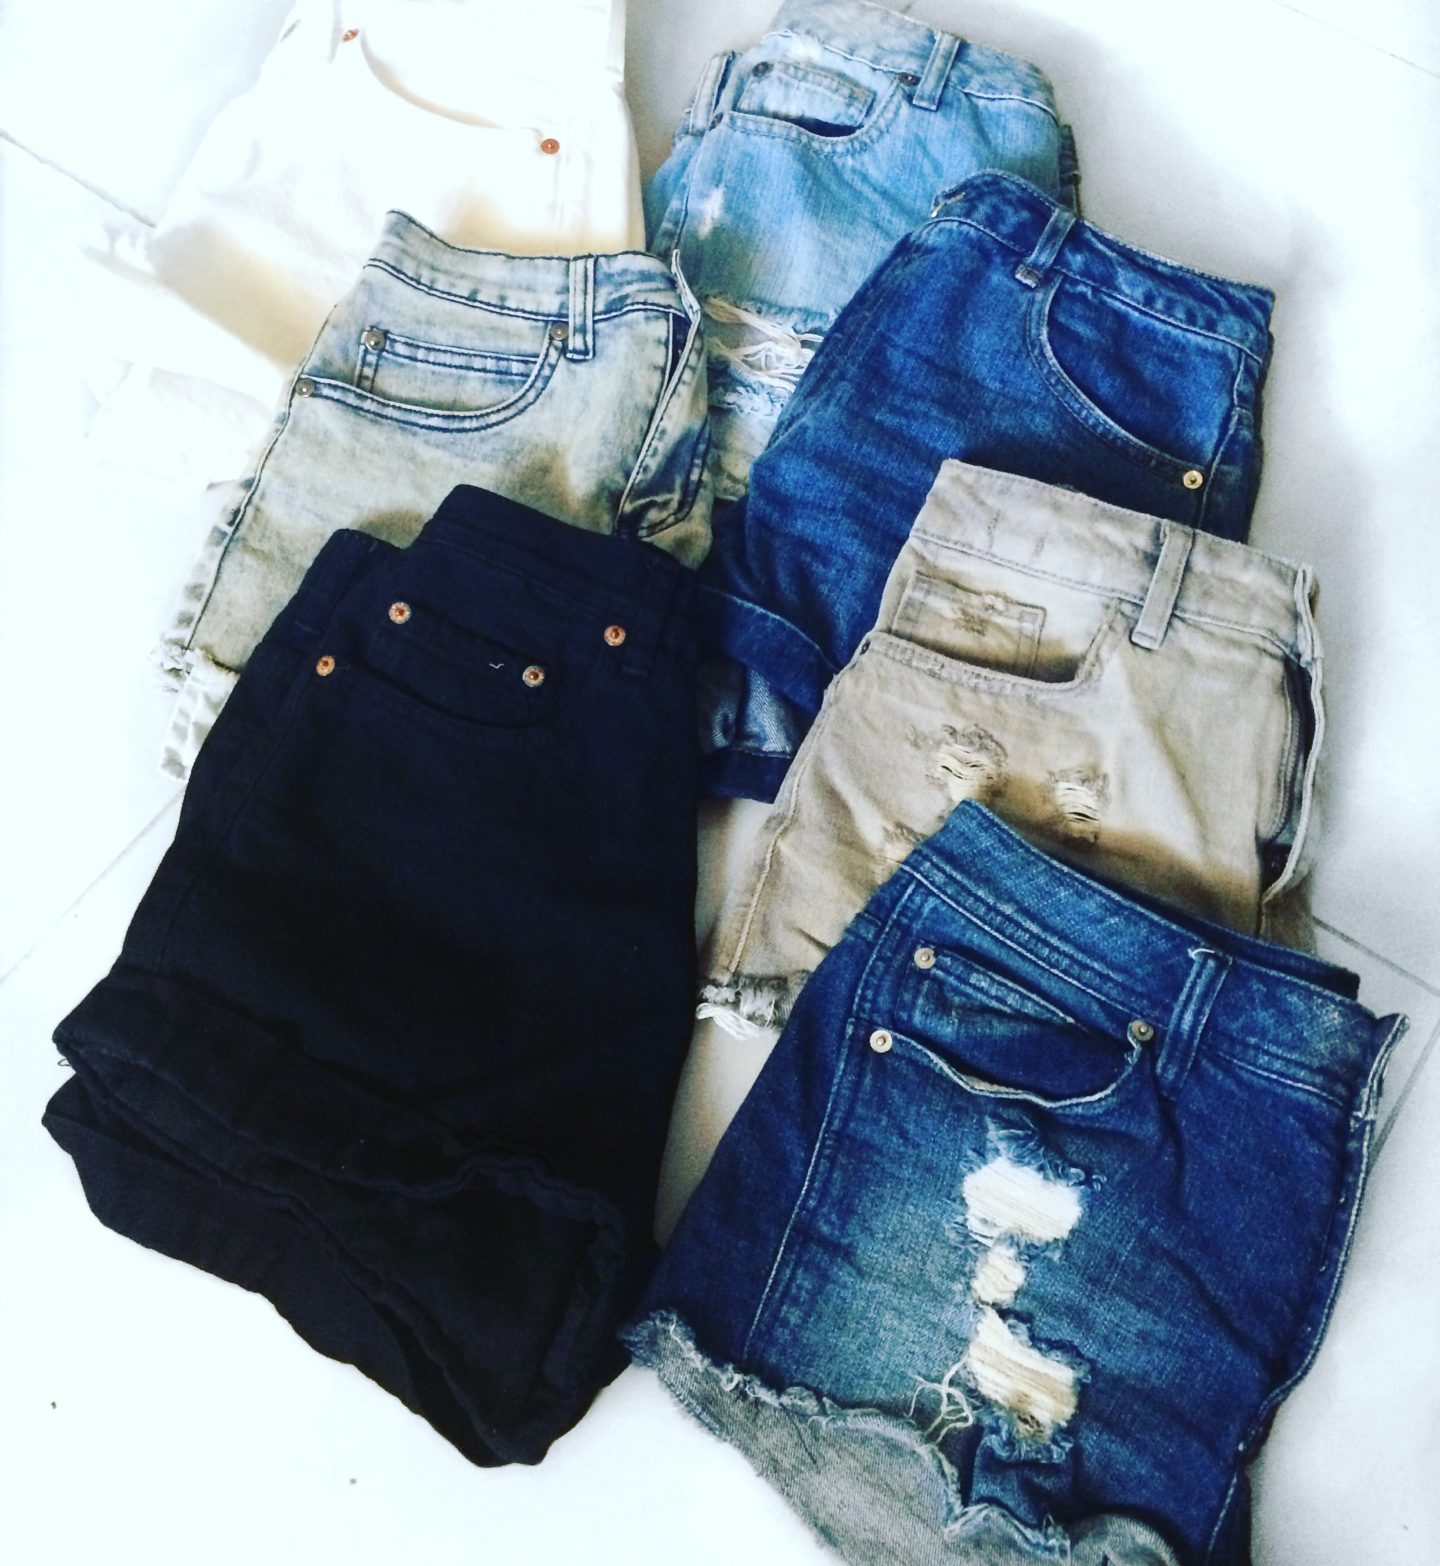 My Denim Shorts Obsession